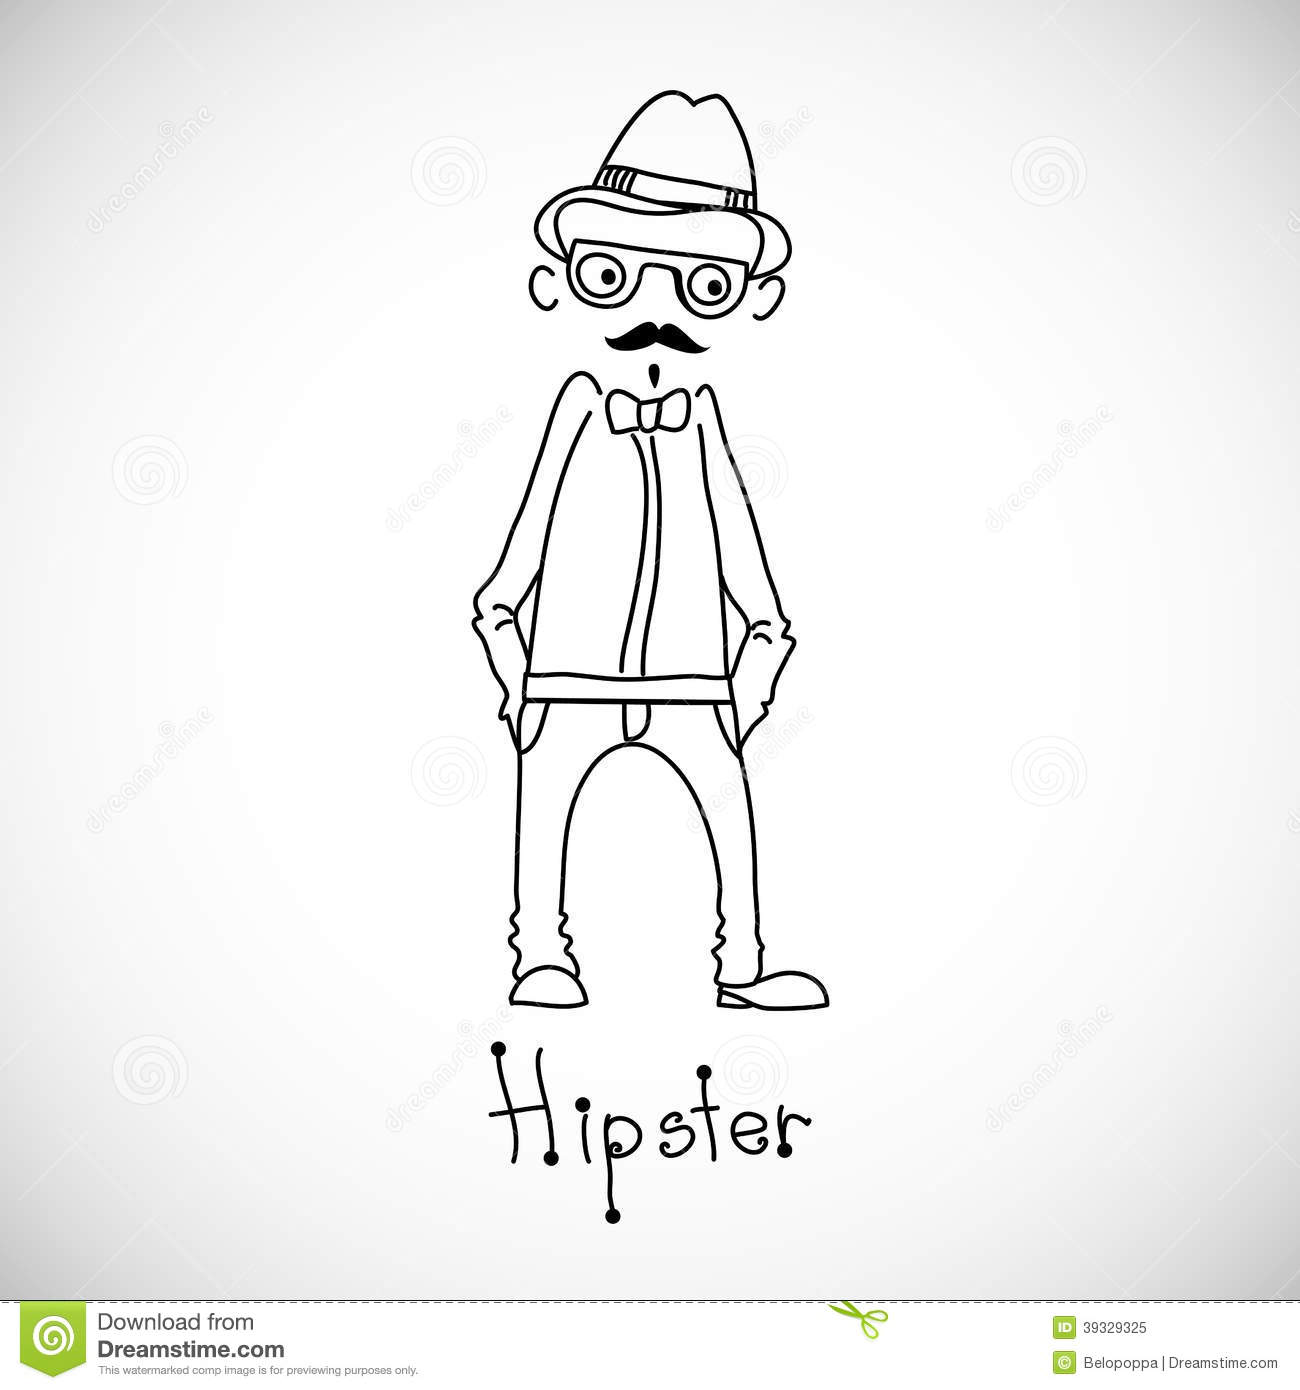 Character Design Illustration : Hipster character design vector illustration stock